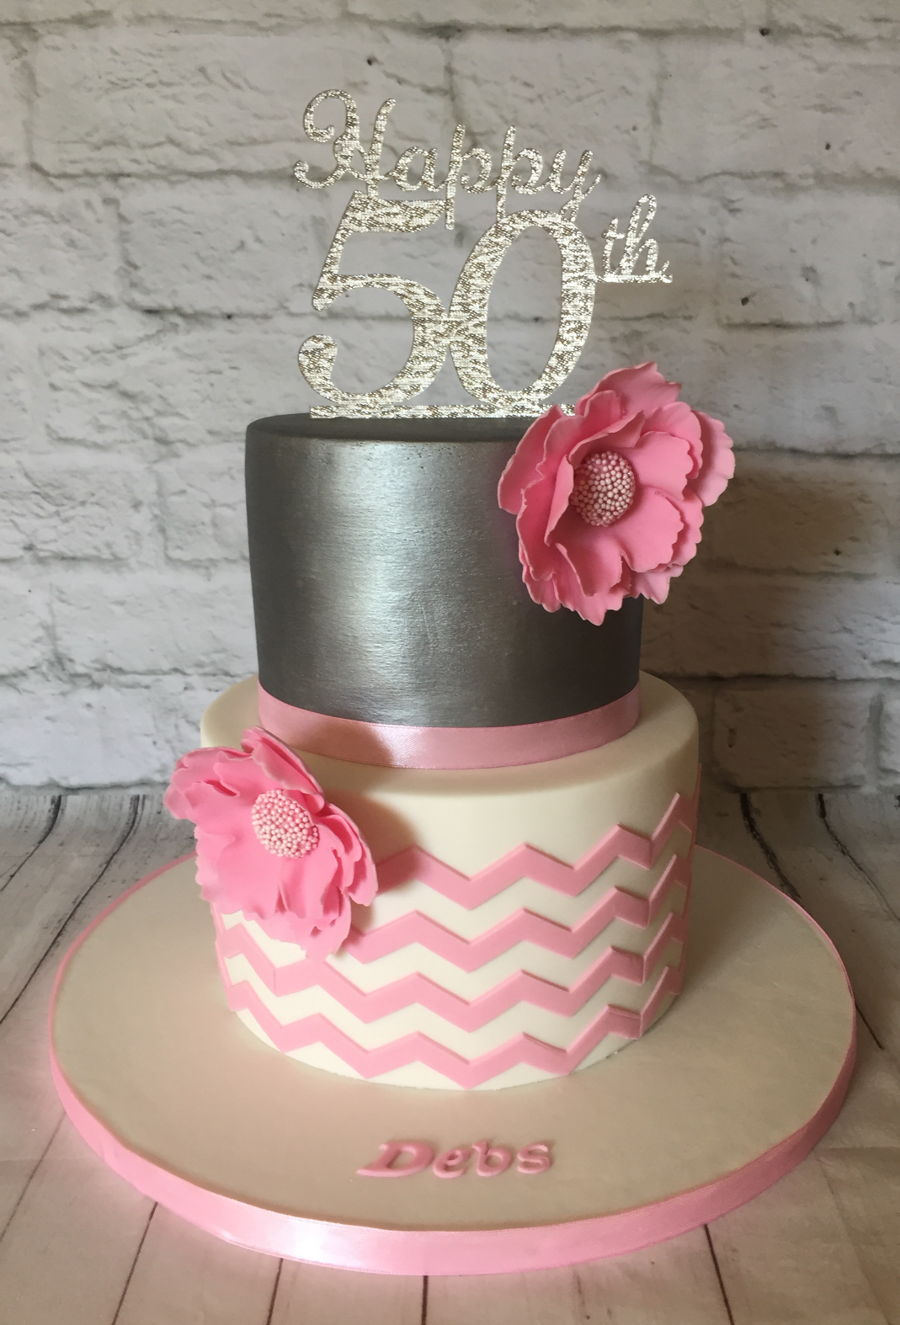 Magnificent Pink Chevron With Silver Cake Cakecentral Com Funny Birthday Cards Online Amentibdeldamsfinfo